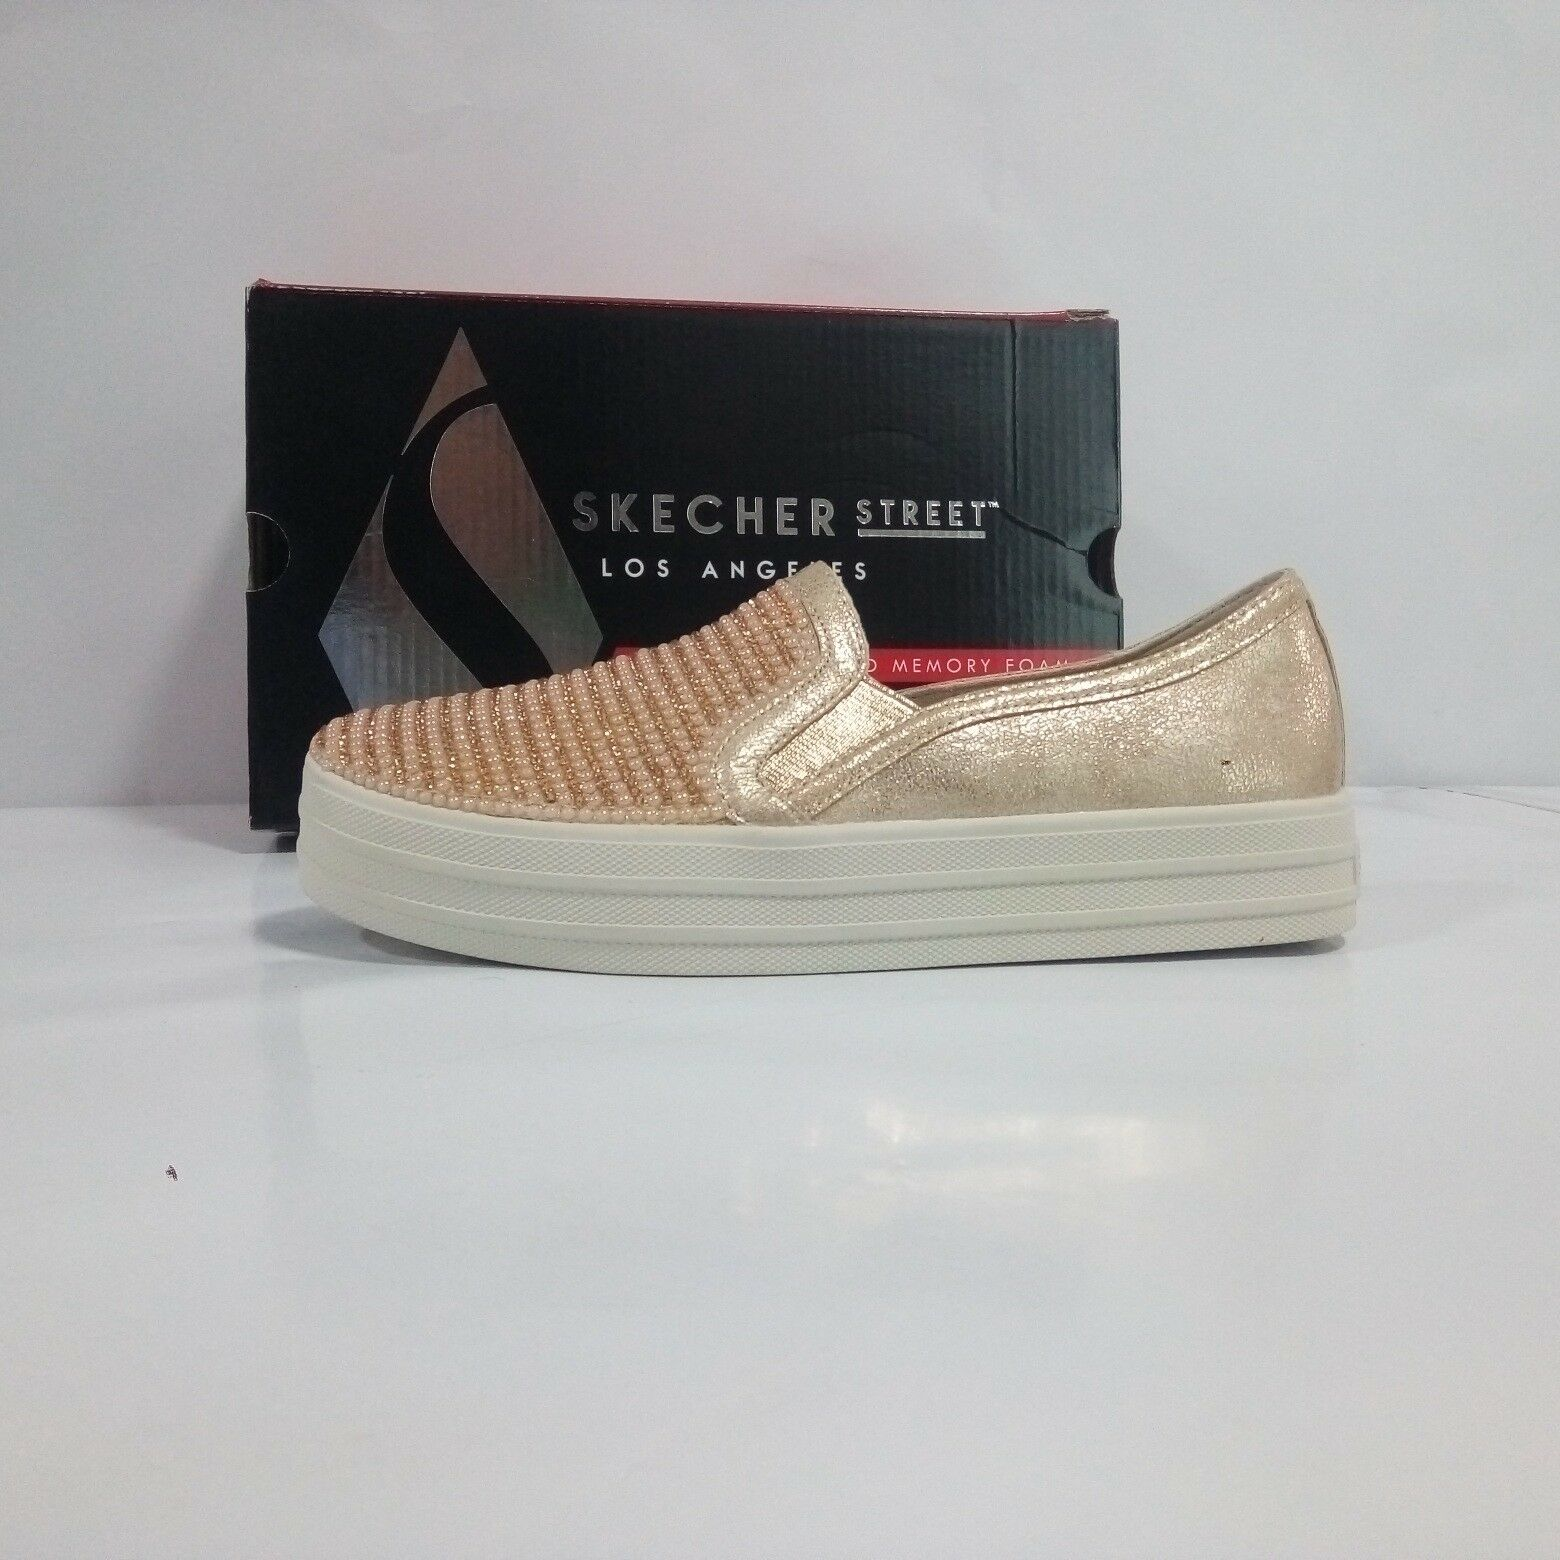 Scarpe Skechers Donna - Double Up Shiny Dancer Dancer Dancer - rosa Cipria - 801 f78ef6